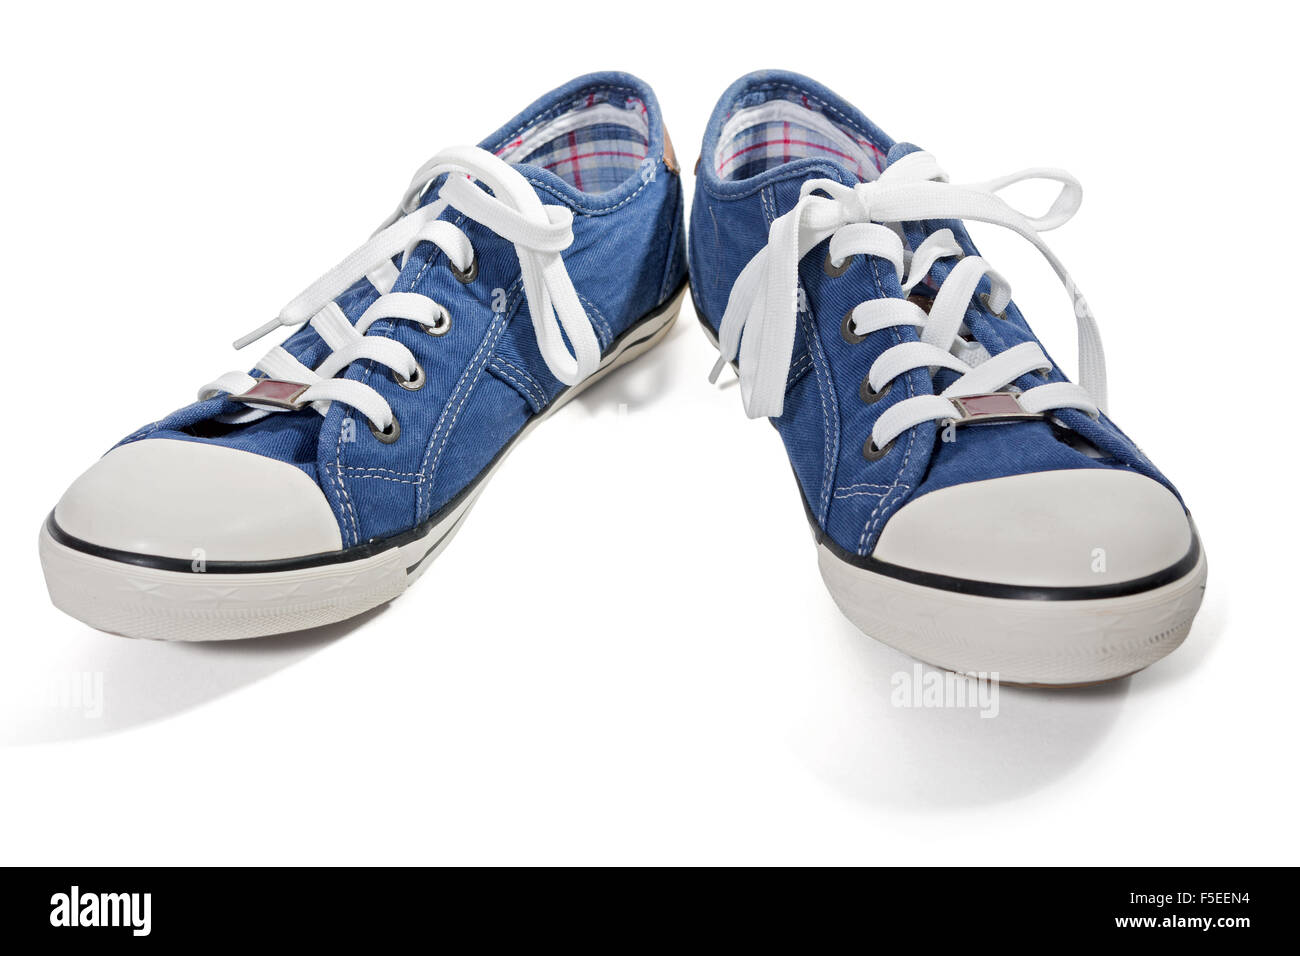 Pair of blue canvas sneakers isolated on white background - Stock Image